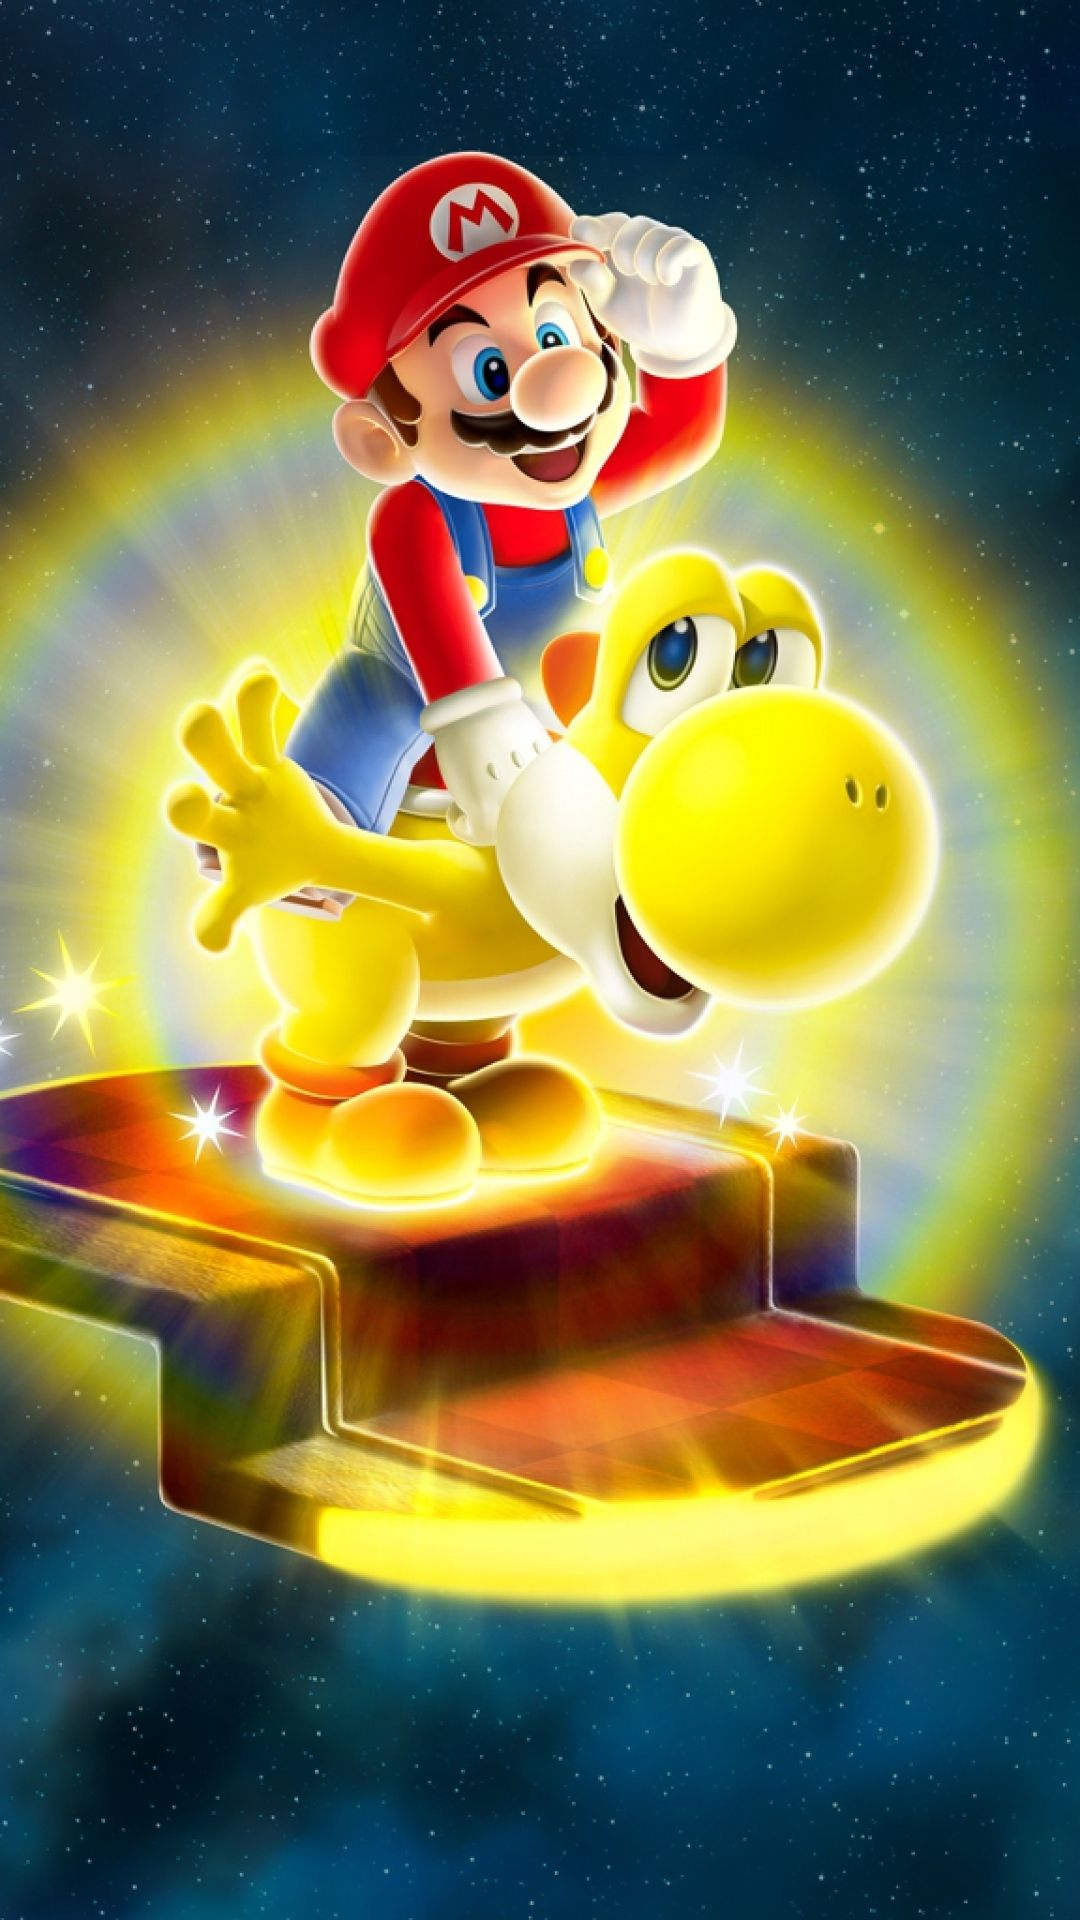 Beautiful Animated Cute Love Wallpapers For Mobile Super Mario